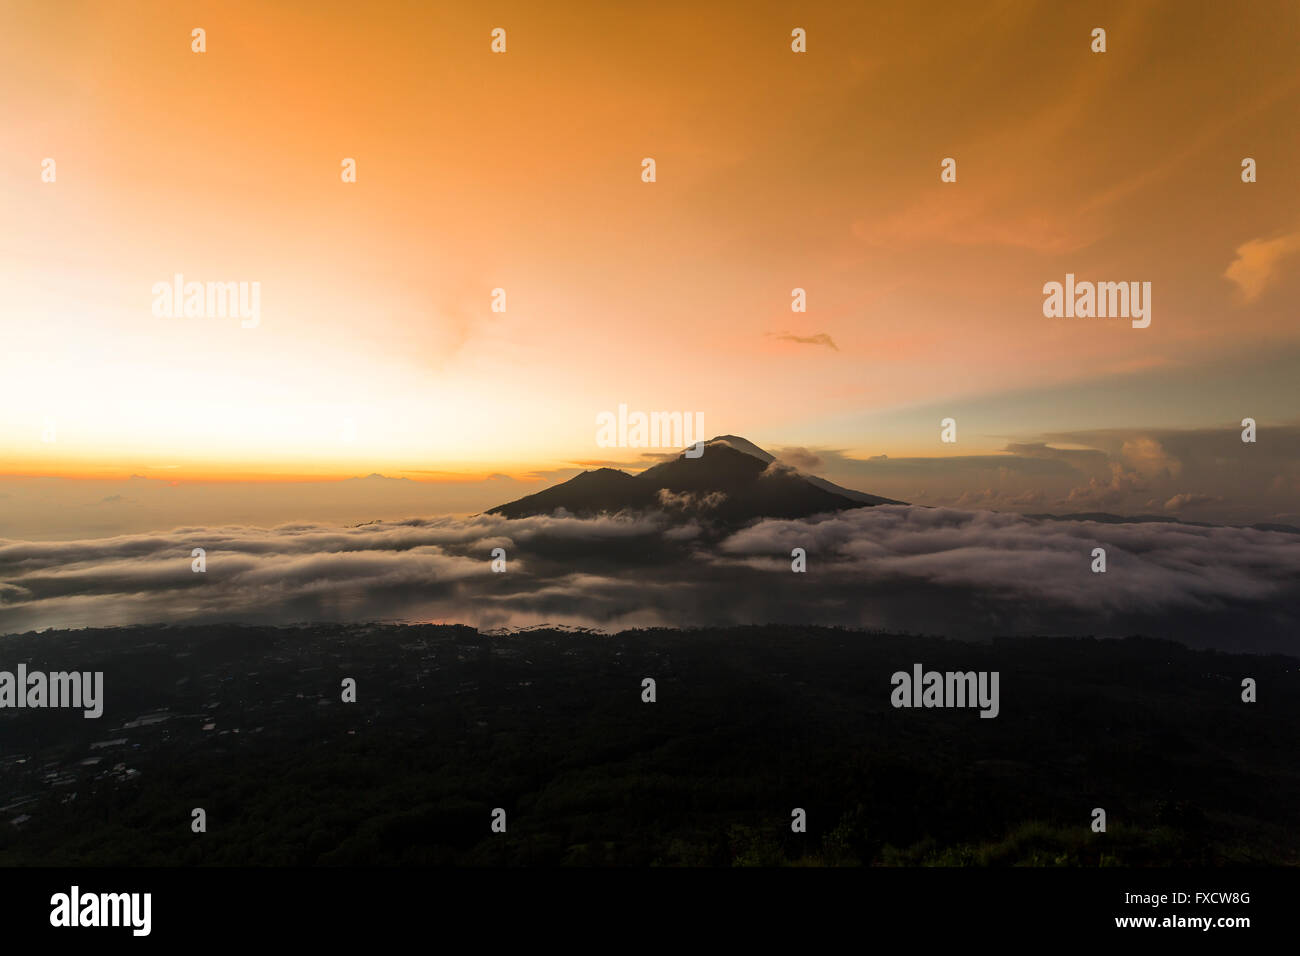 Sun rising on a beautiful morning from the top of Mount Batur - Bali, Indonesia - Stock Image